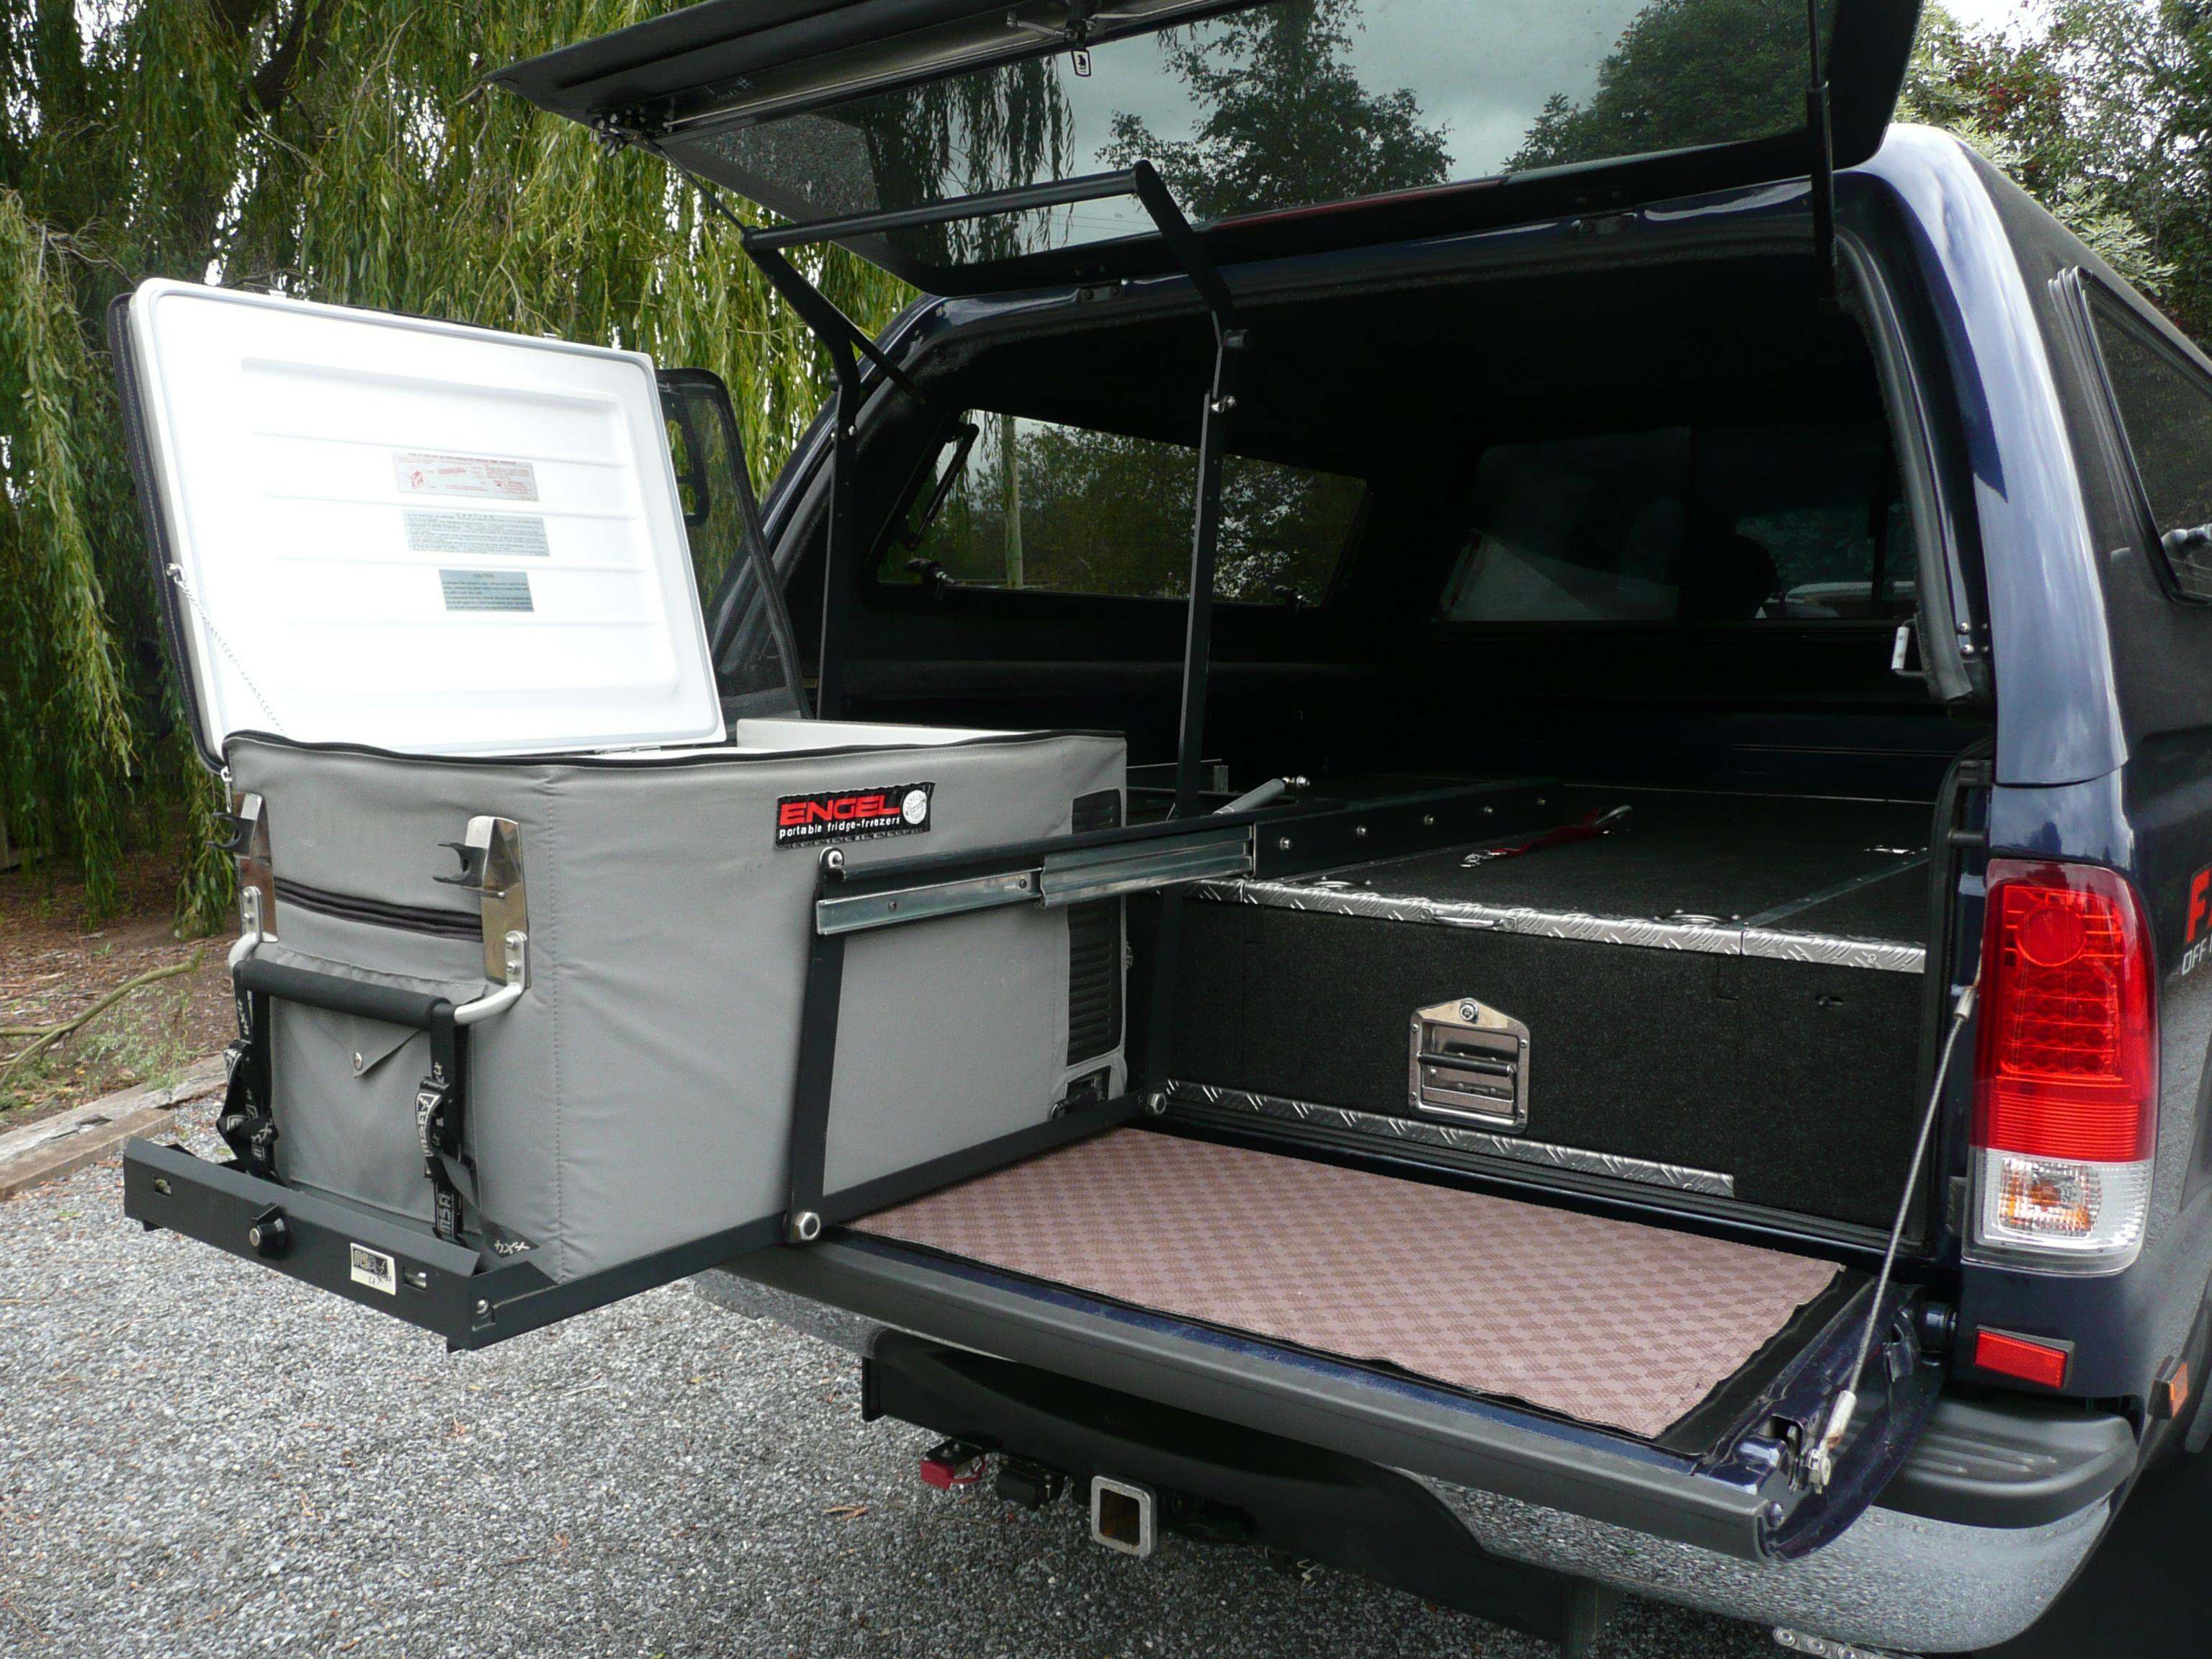 il tradesman double geneva mount homemade linen boxes used plans pickup box mobilestrong for out calmly atc slide bedding to drawers decked drawer diy truck bed uk diverting hayneedle zq img tool at storage toolbox